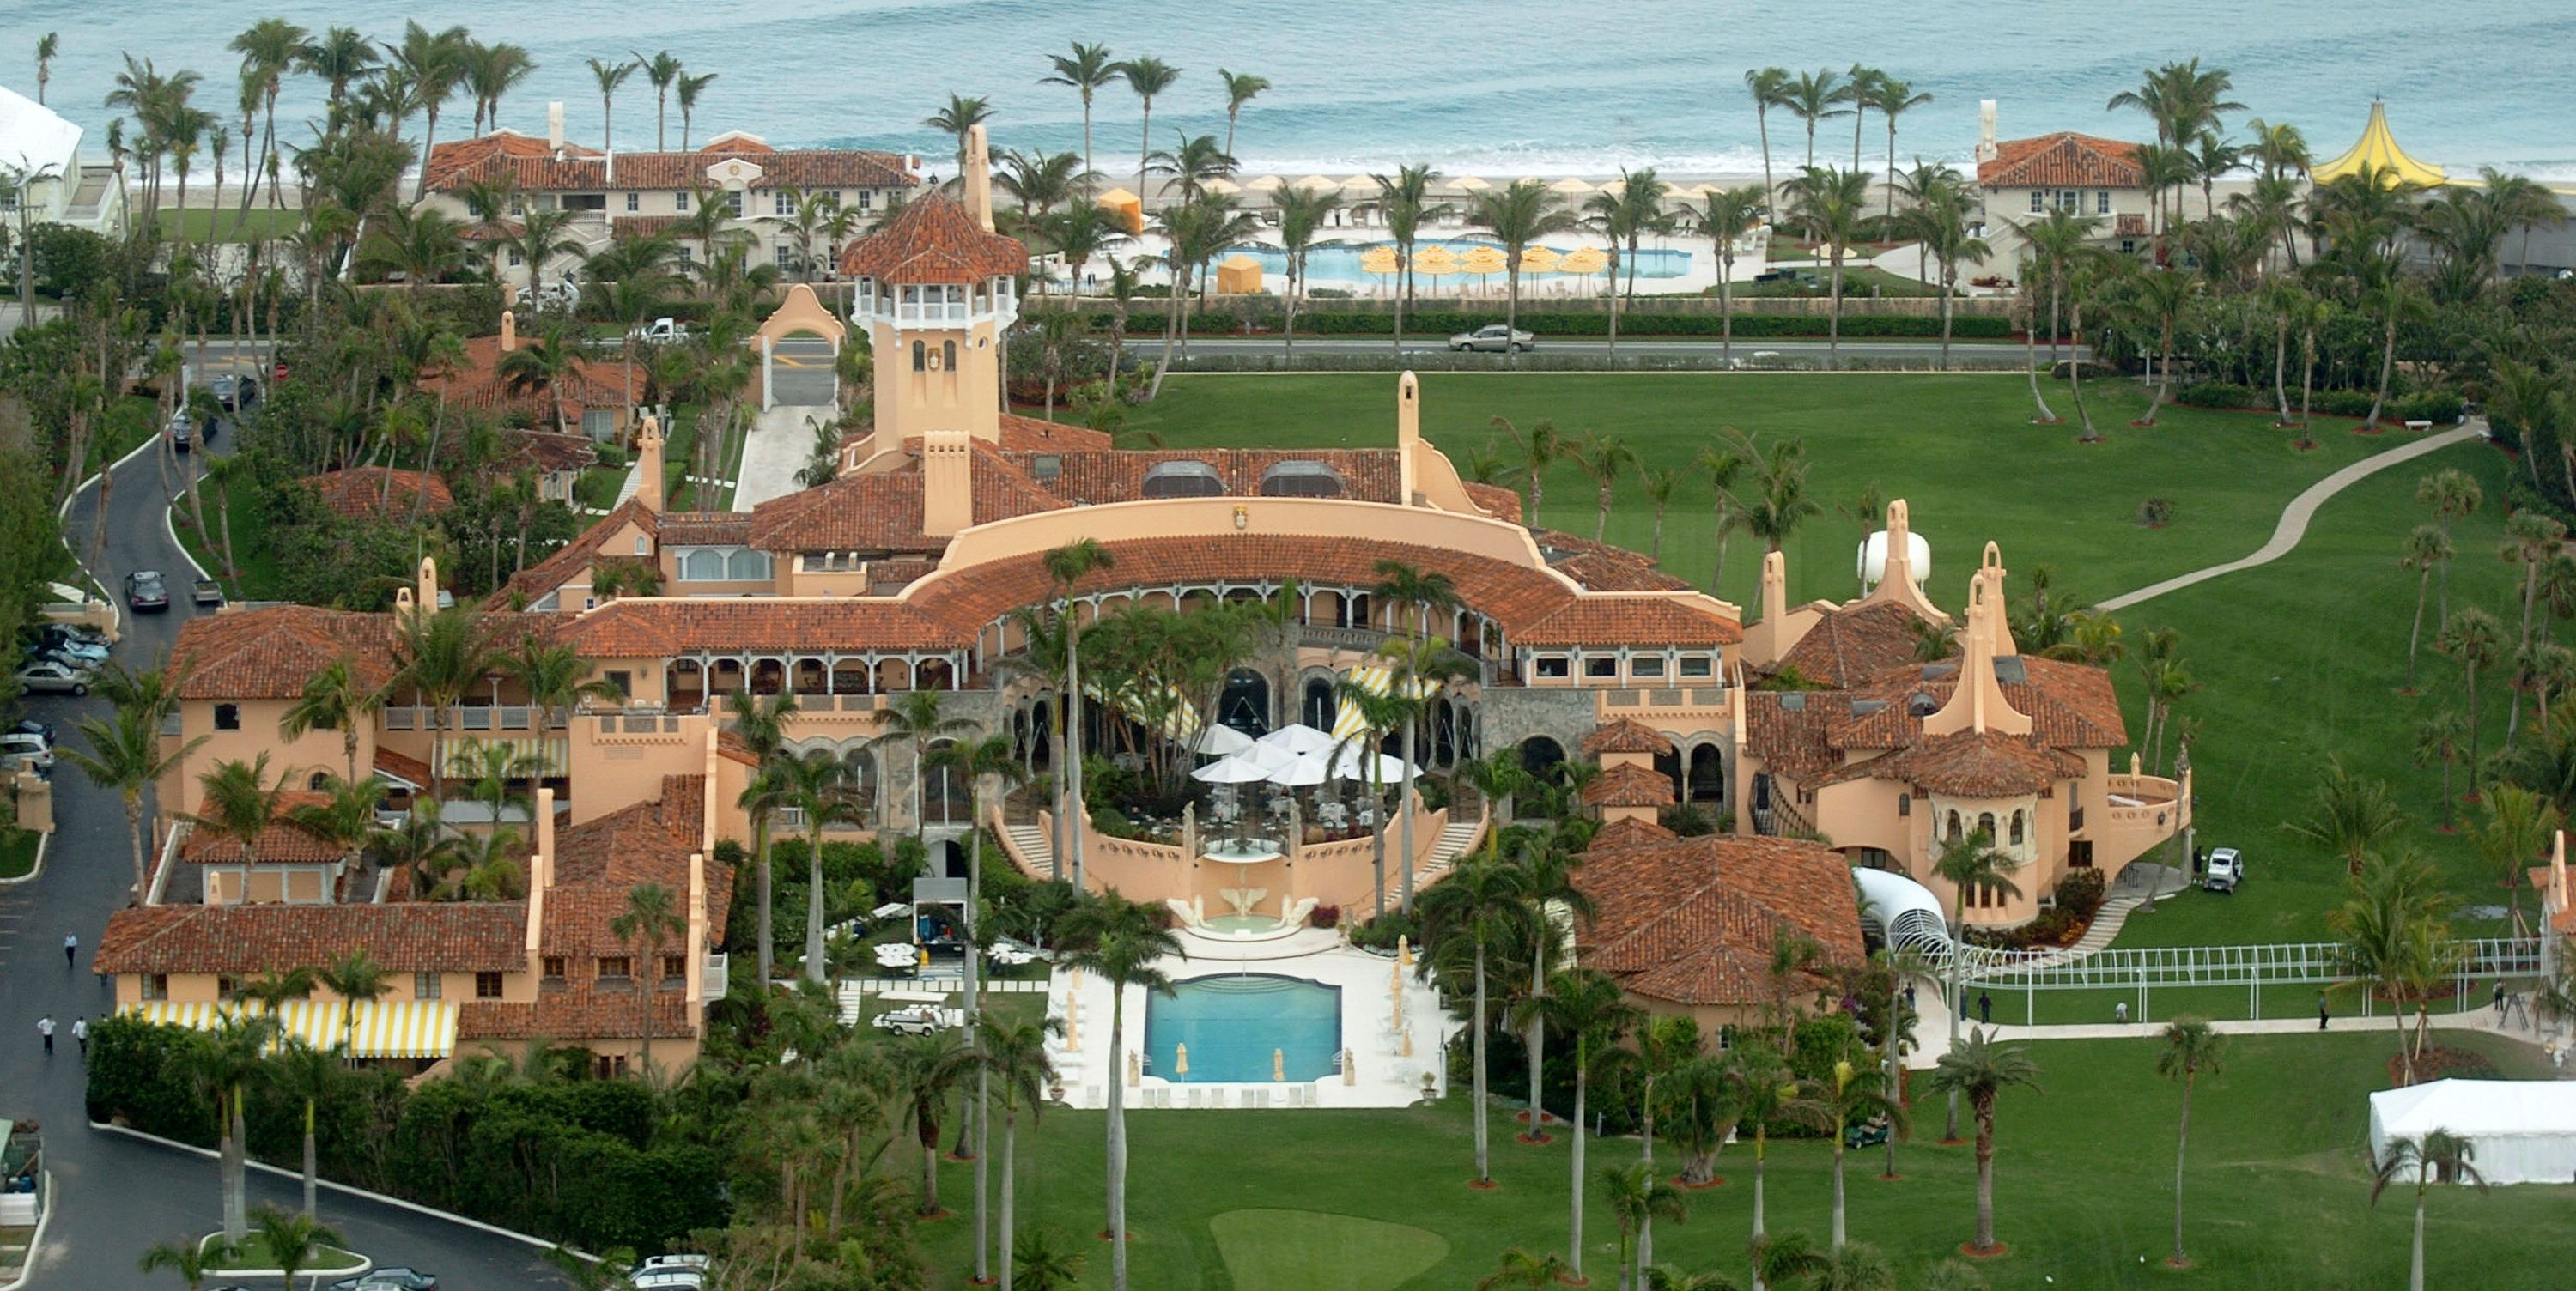 Donald Trump S Trips To Mar A Lago 2018 How Many Times